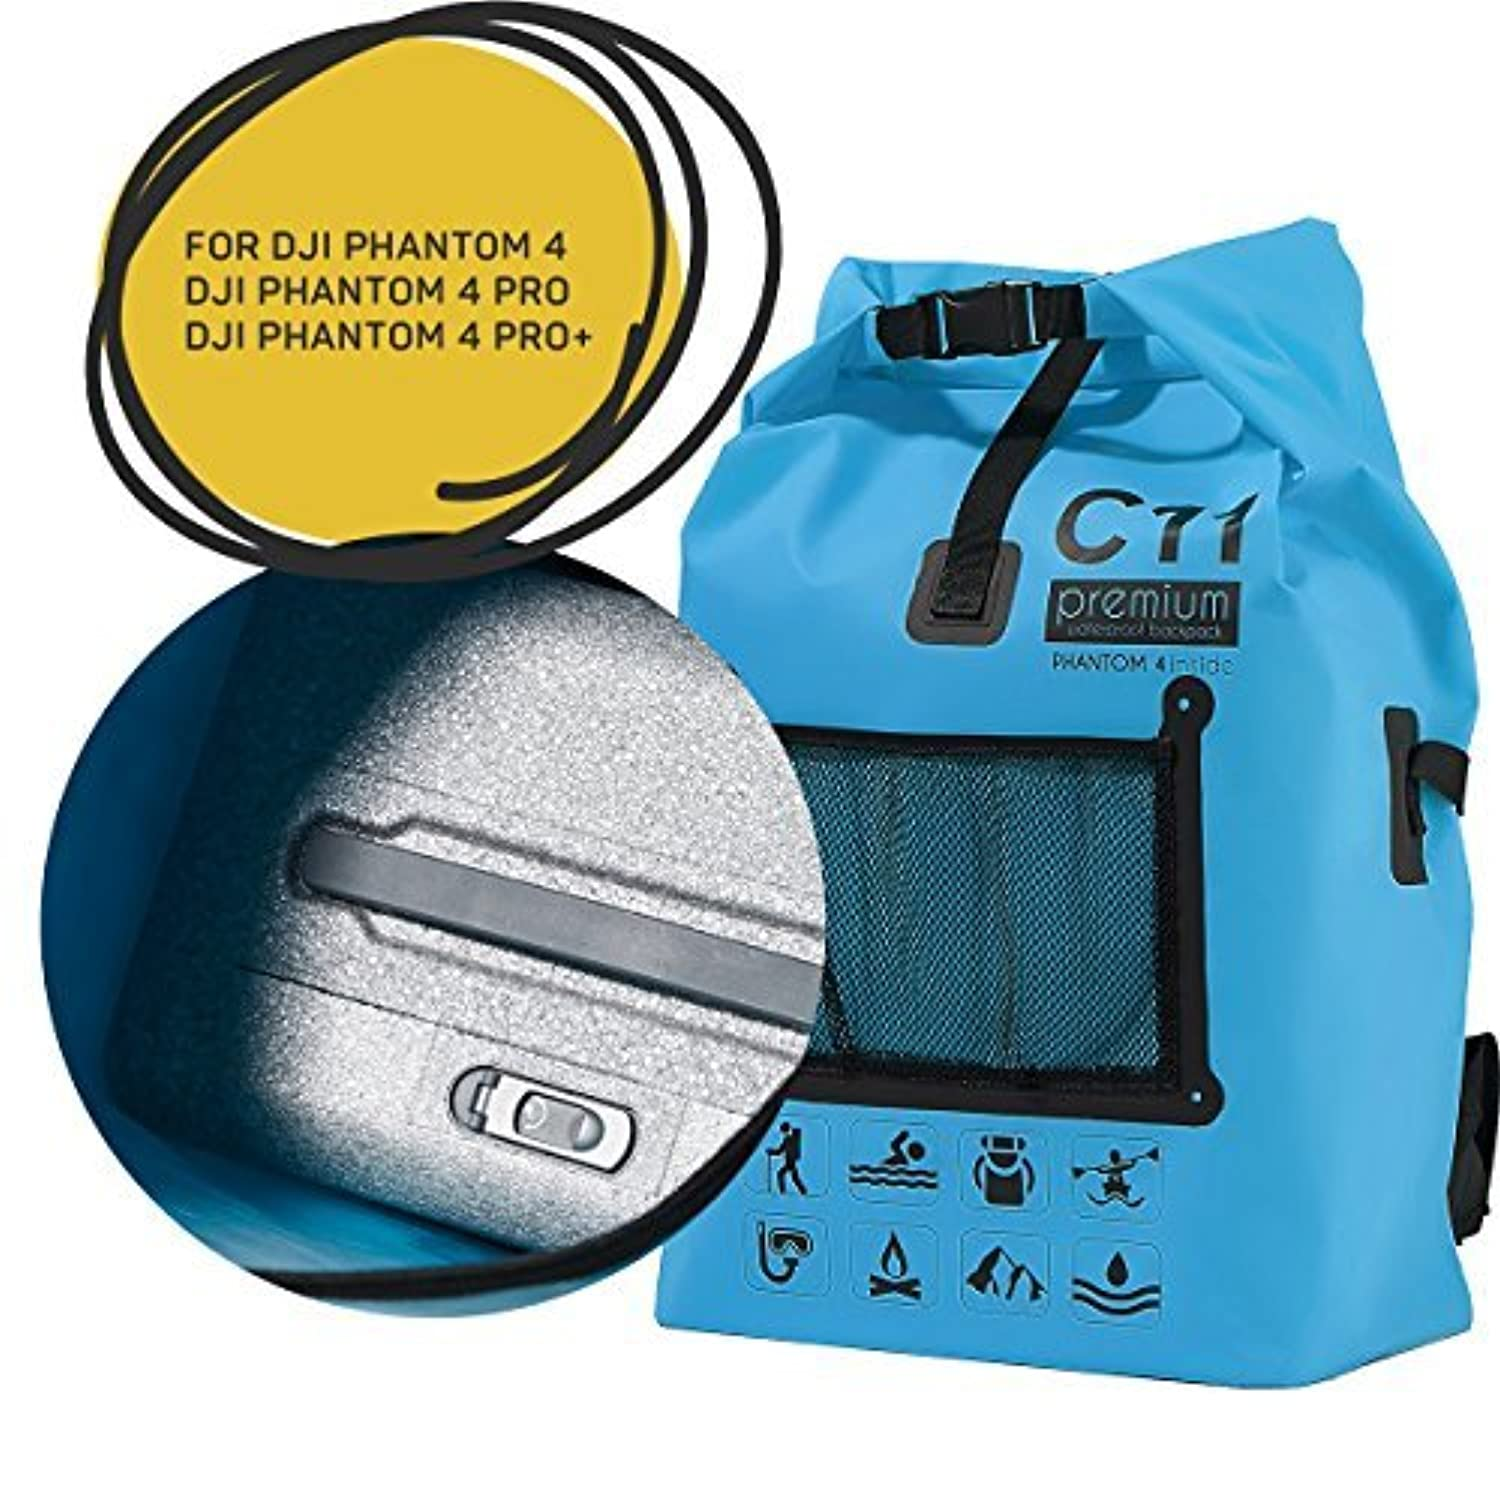 Backpack for DJI Phantom 4/DJI Phantom 4 Pro/DJI Phantom 4 Pro+ Premium Blue Waterproof Water Resistant Bag Rucksack Knapsack by C11 [並行輸入品]